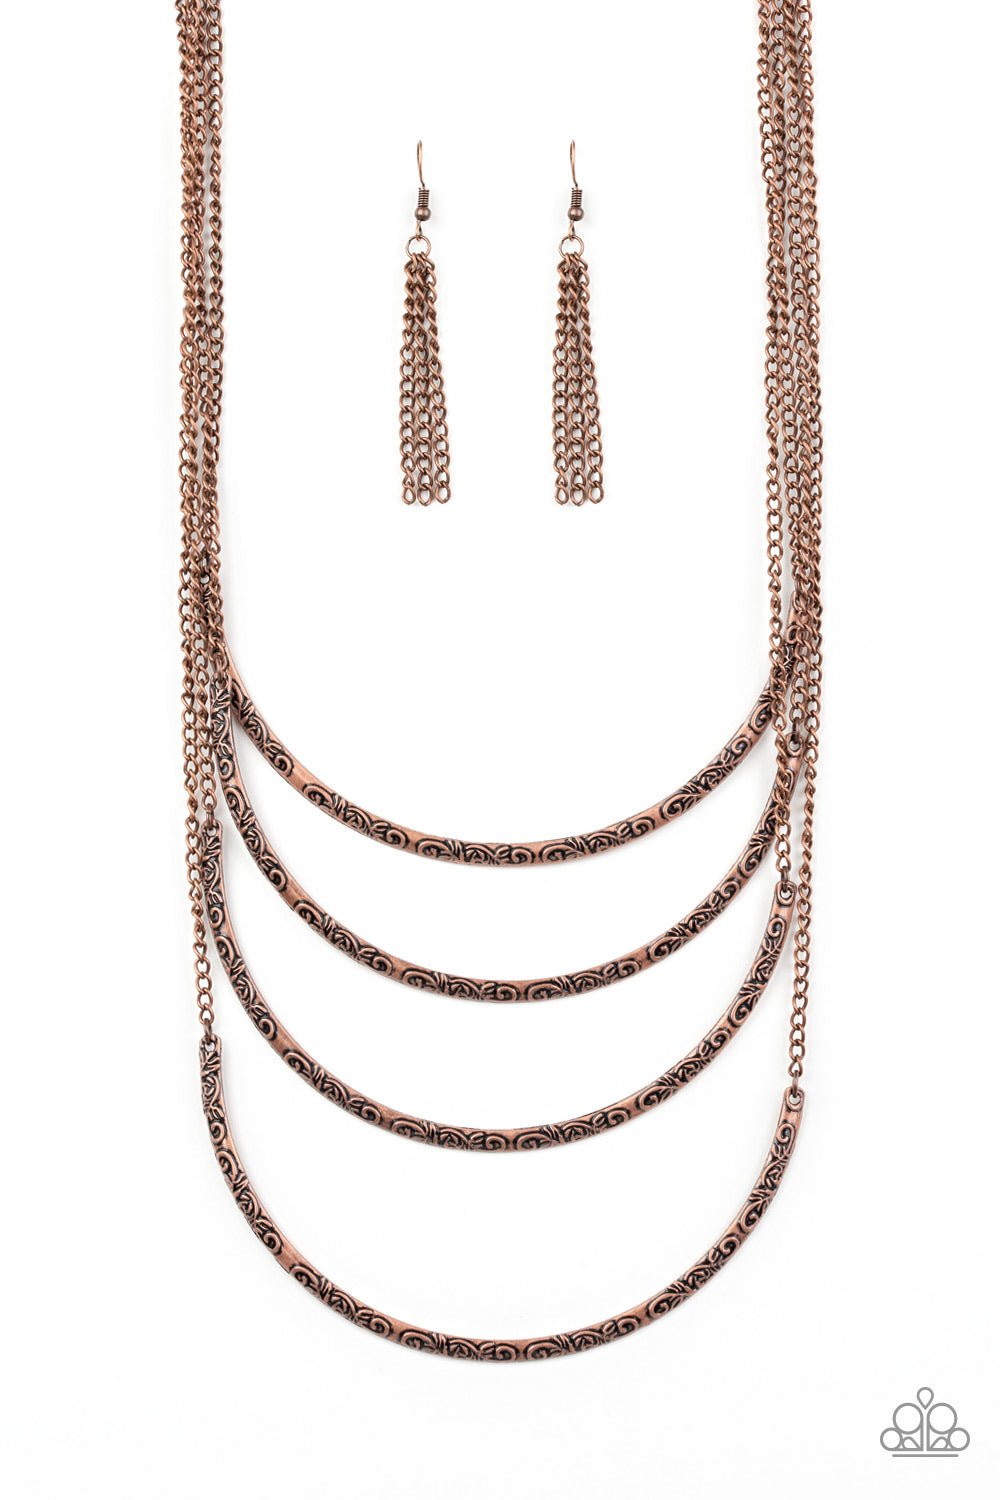 It Will Be Over MOON - Copper Layered Necklace